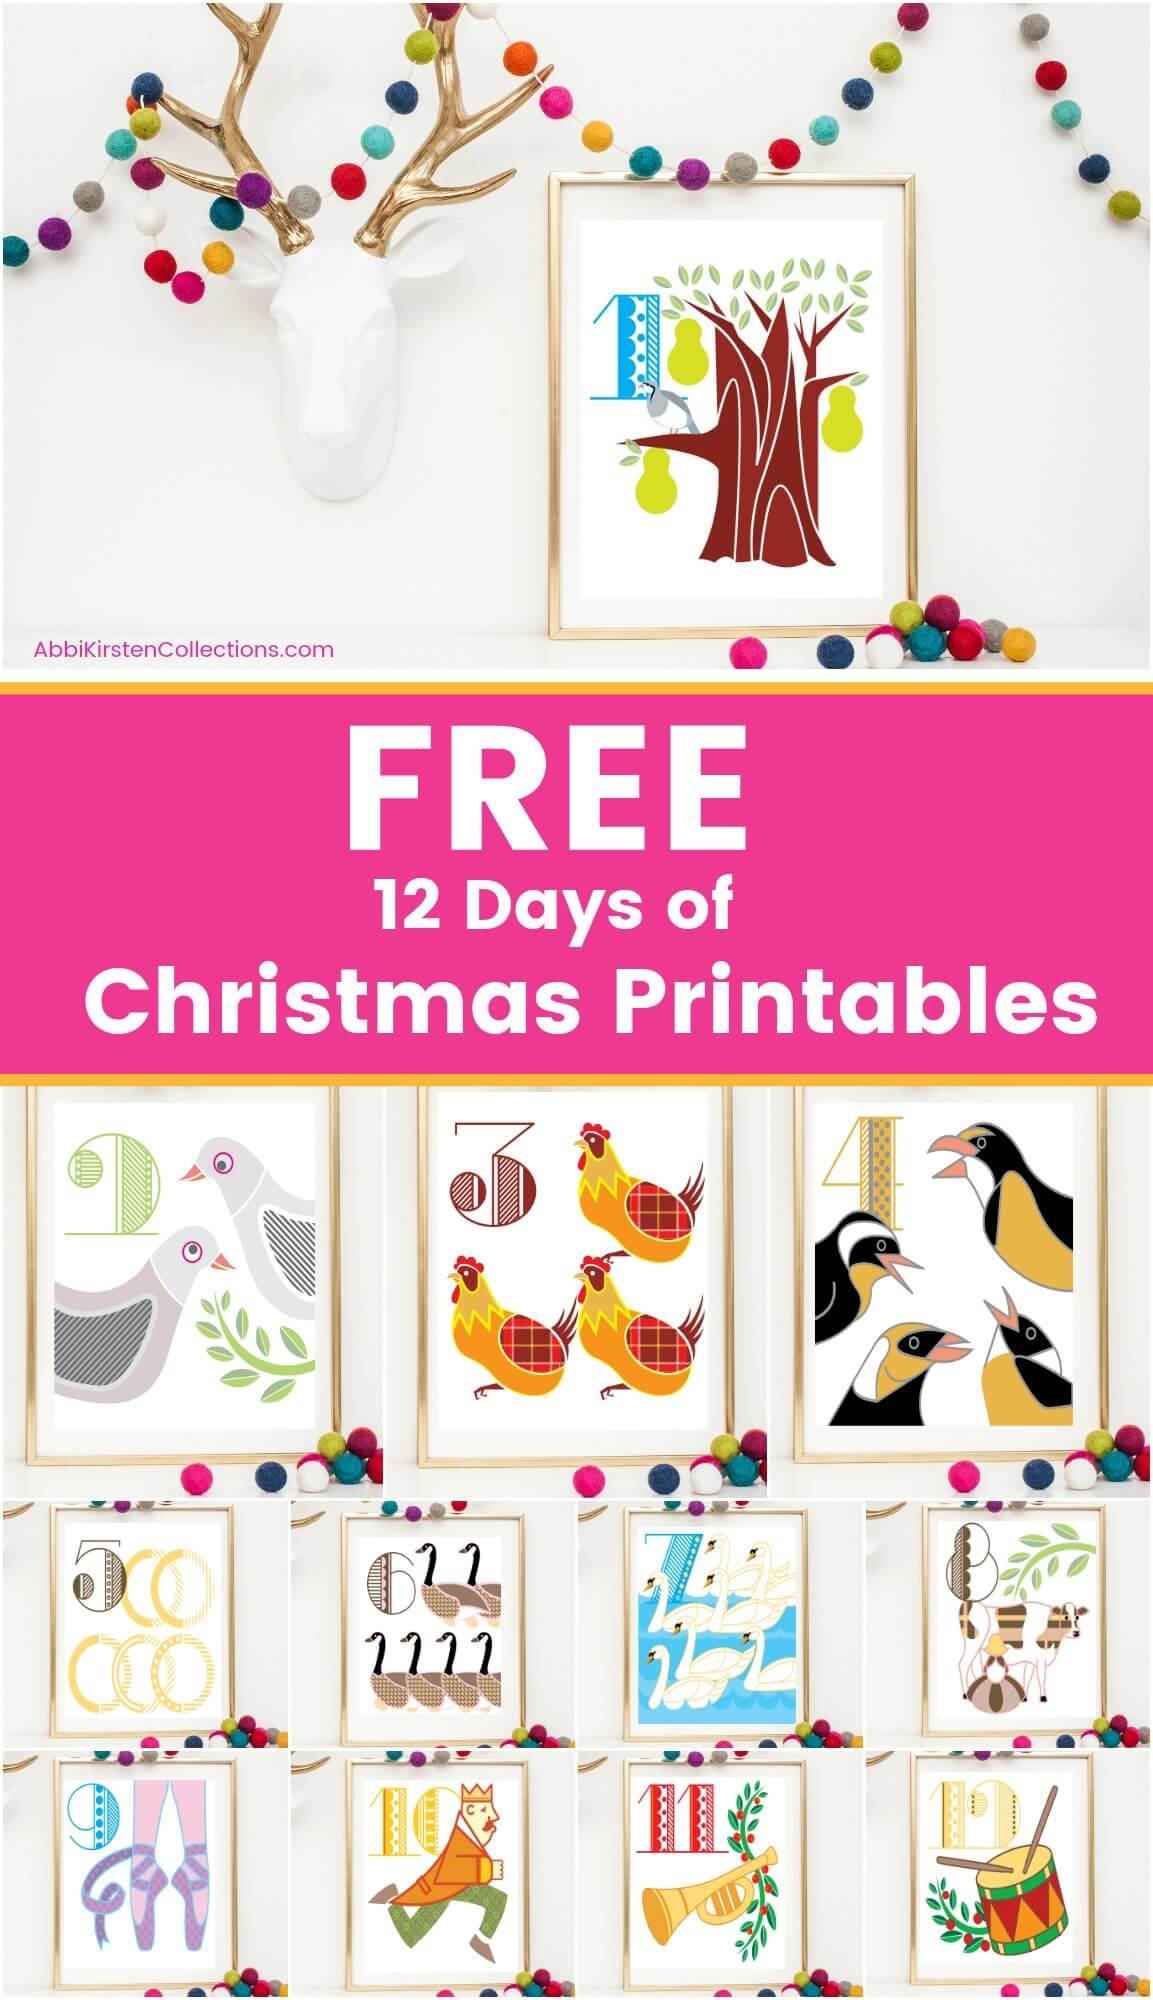 photo regarding 12 Days of Christmas Printable titled 12 Times of Xmas Printables: Cost-free Xmas Printable